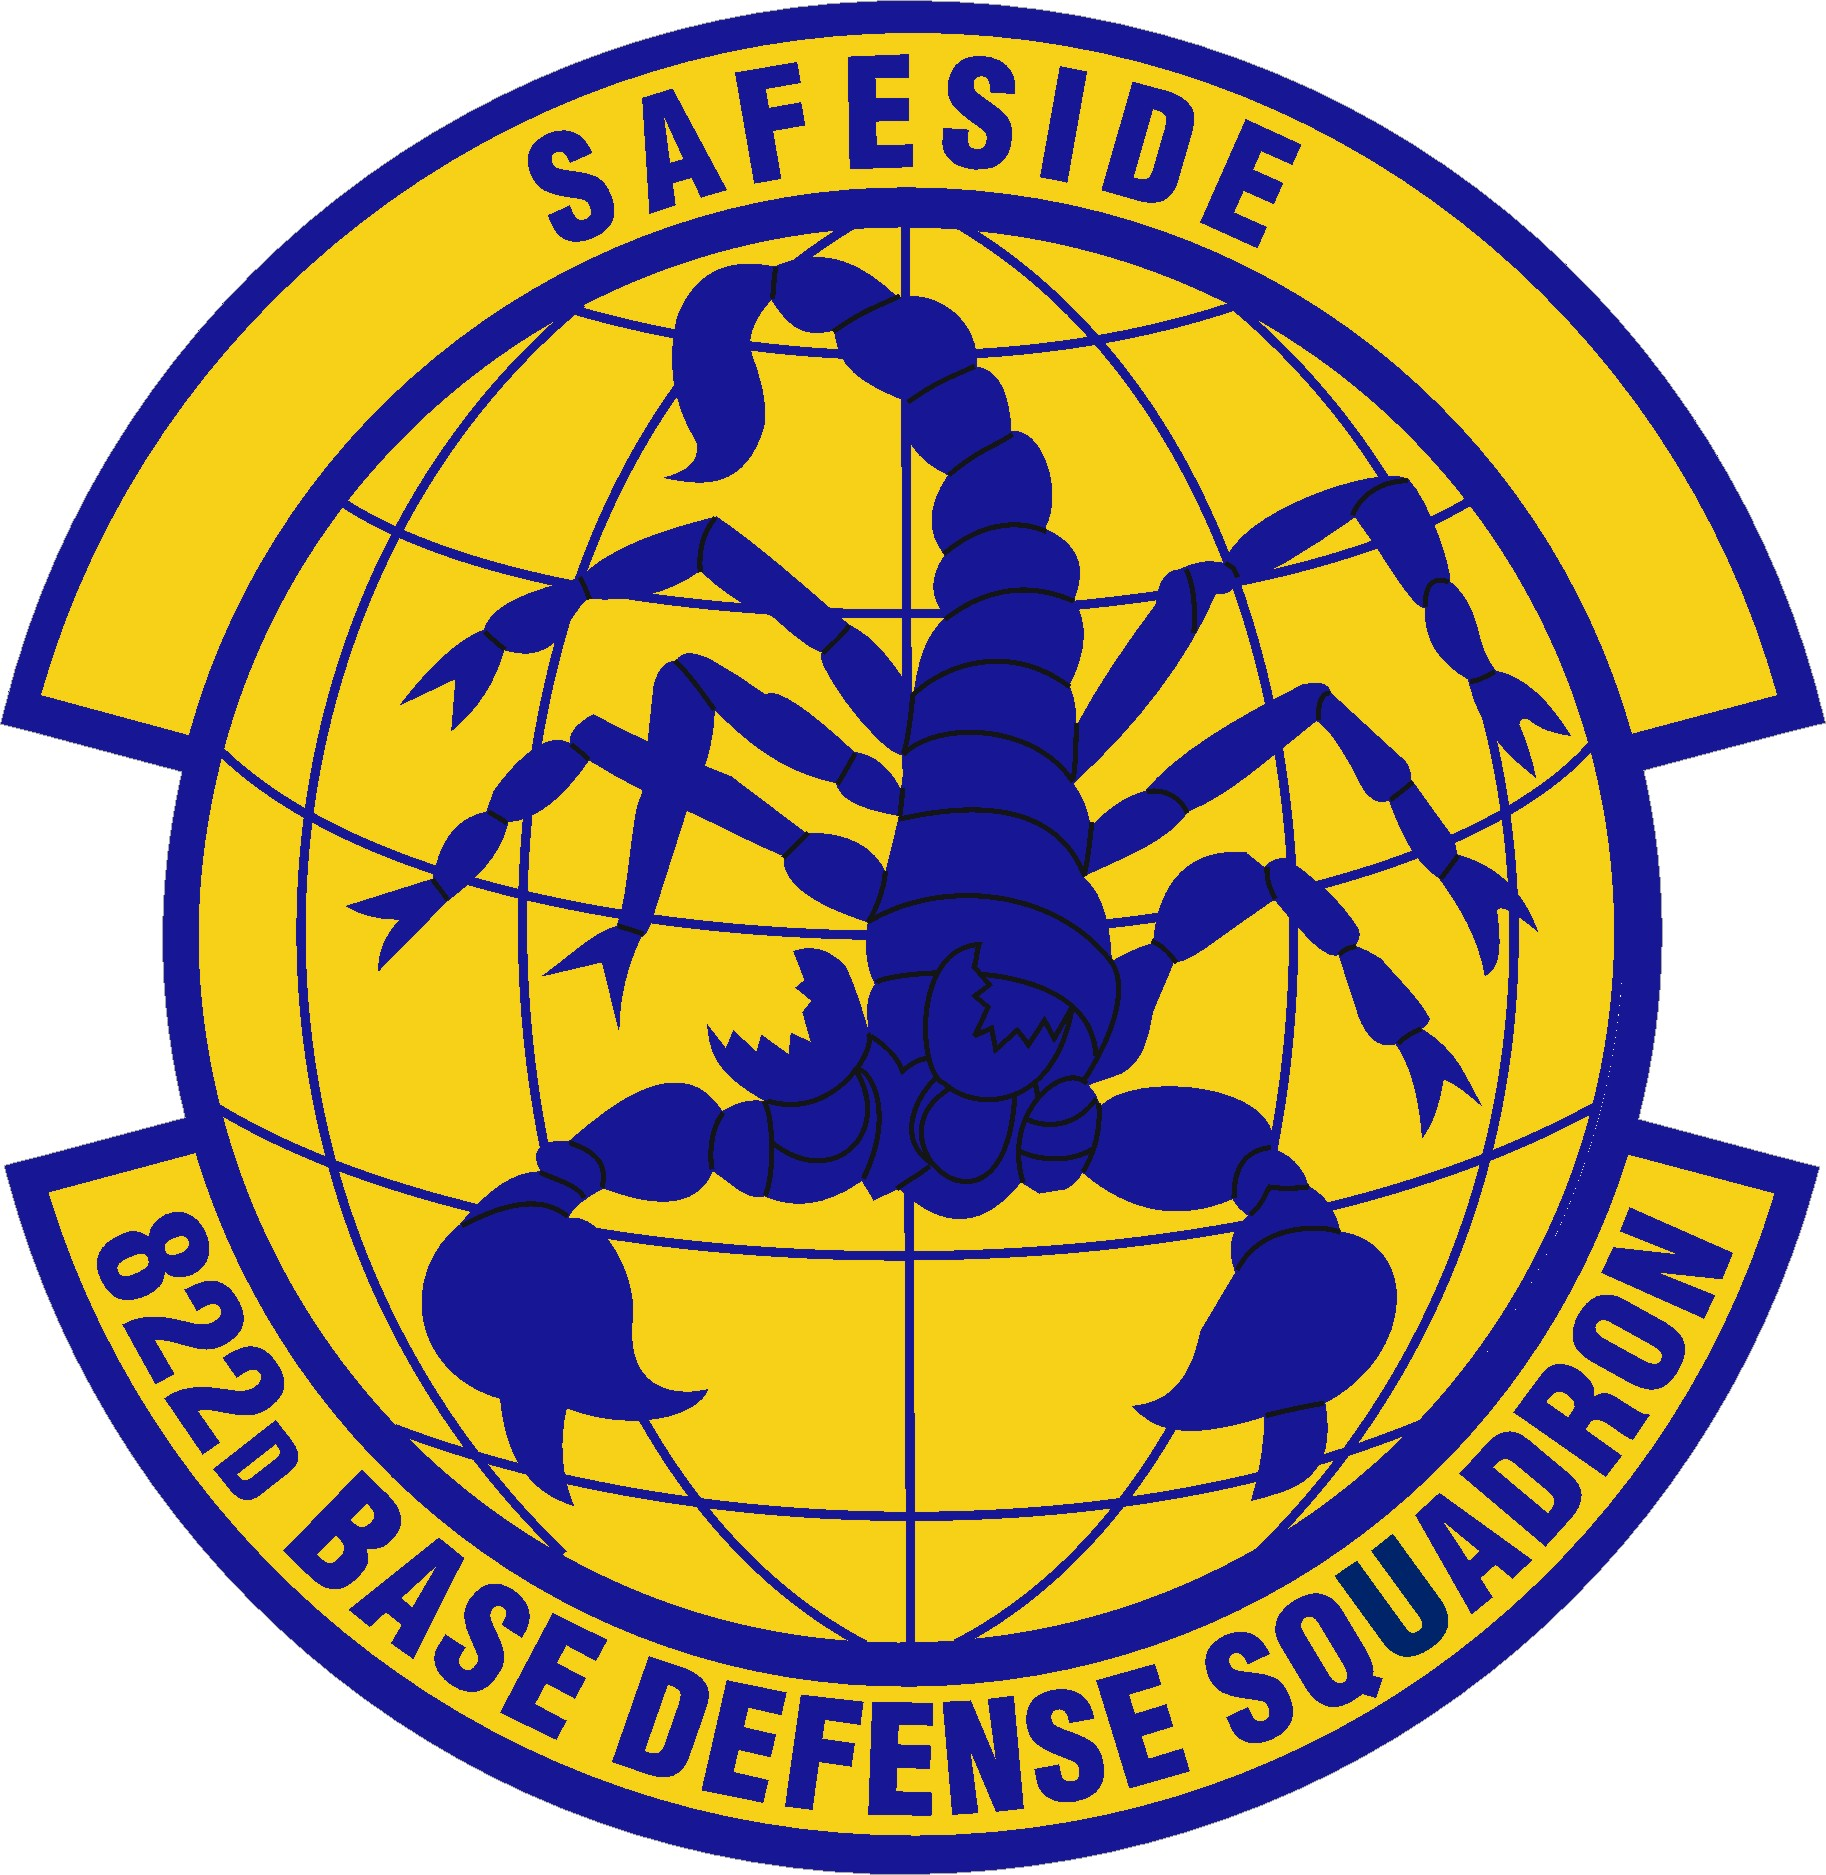 822 Base Defense Squadron (ACC)